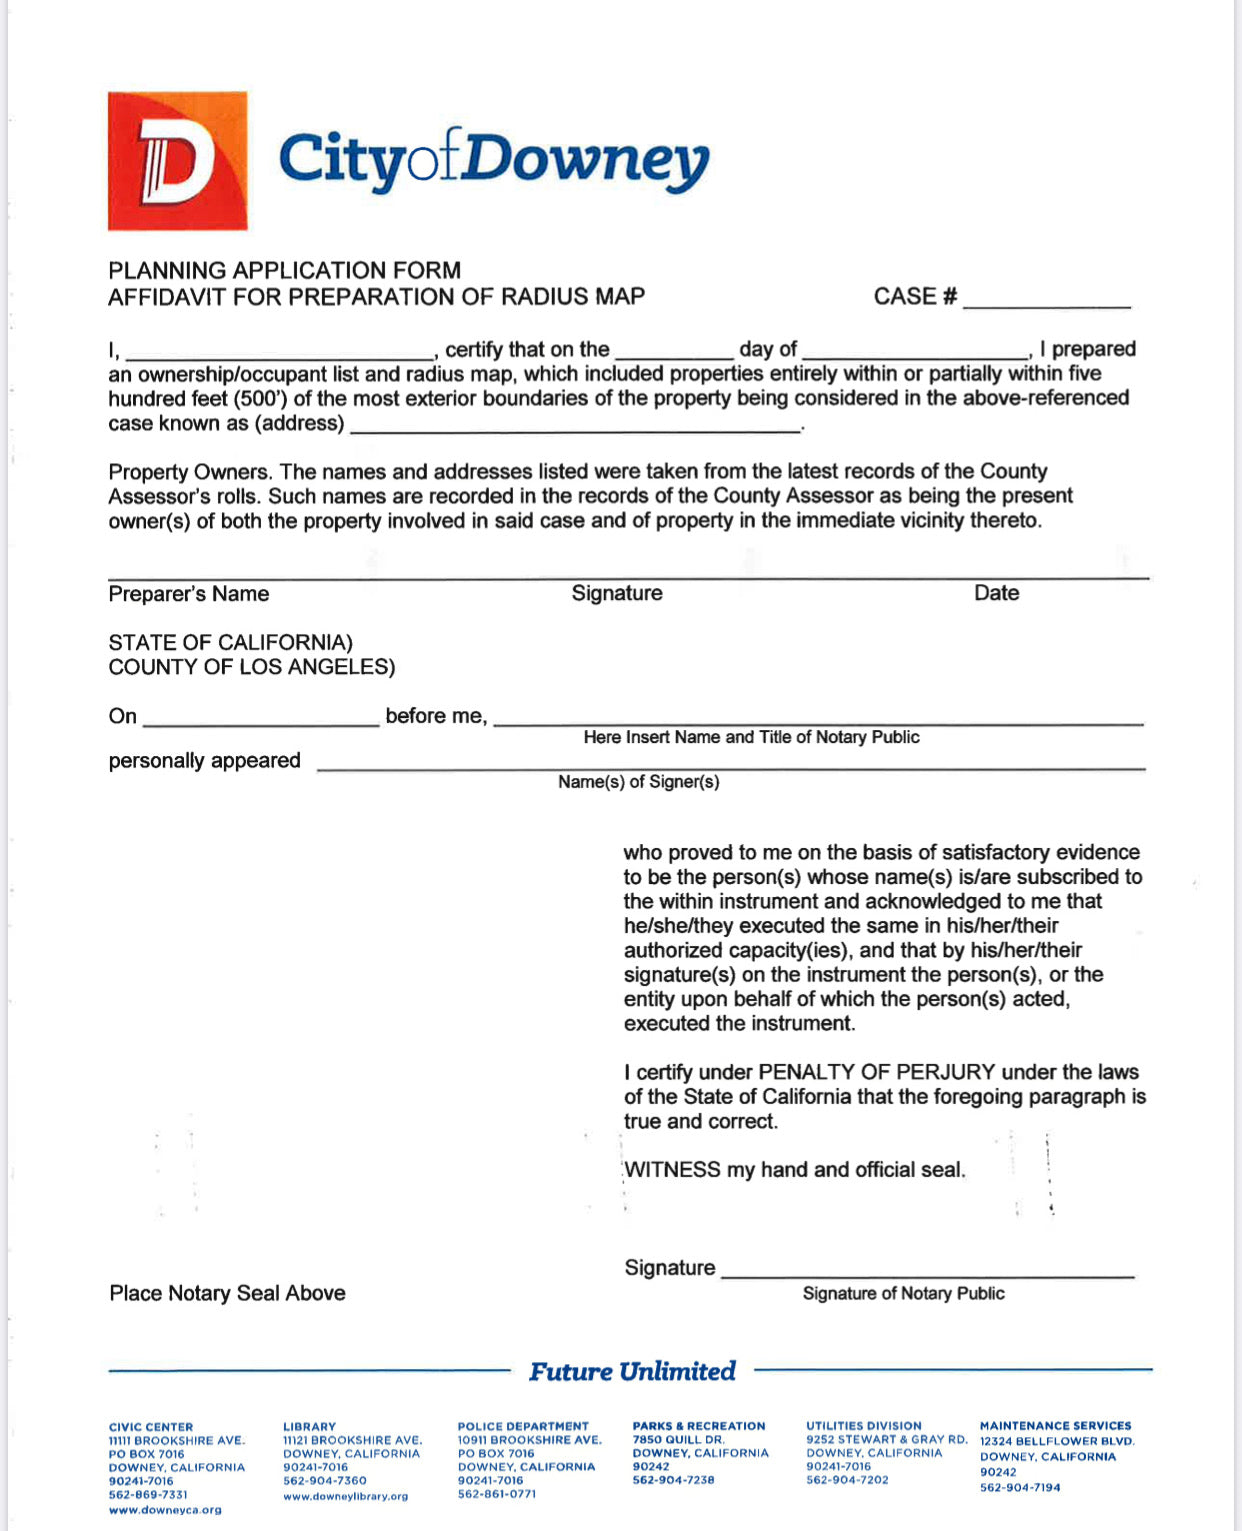 Downey - City Package